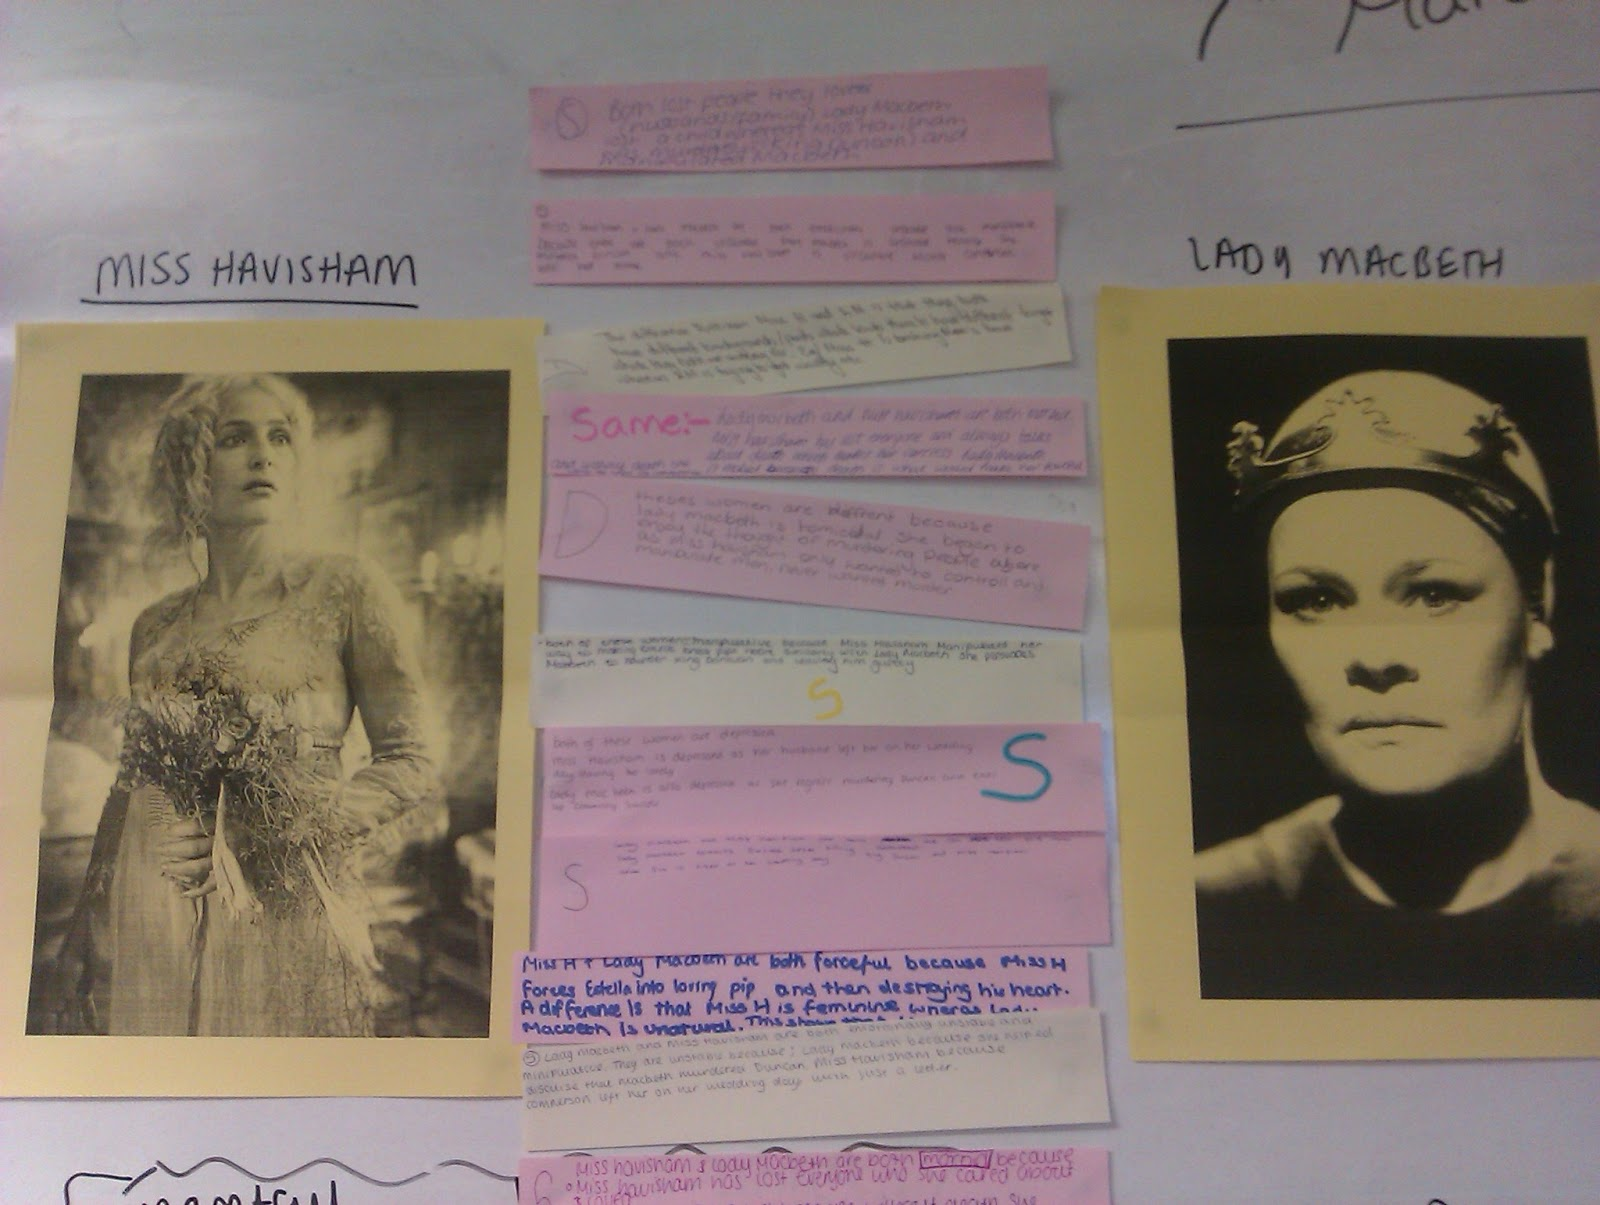 miss havisham essay examples for essays examples for essays aetr  a psychological journey comparing miss havisham and lady macbeth pooled comparisons on the board